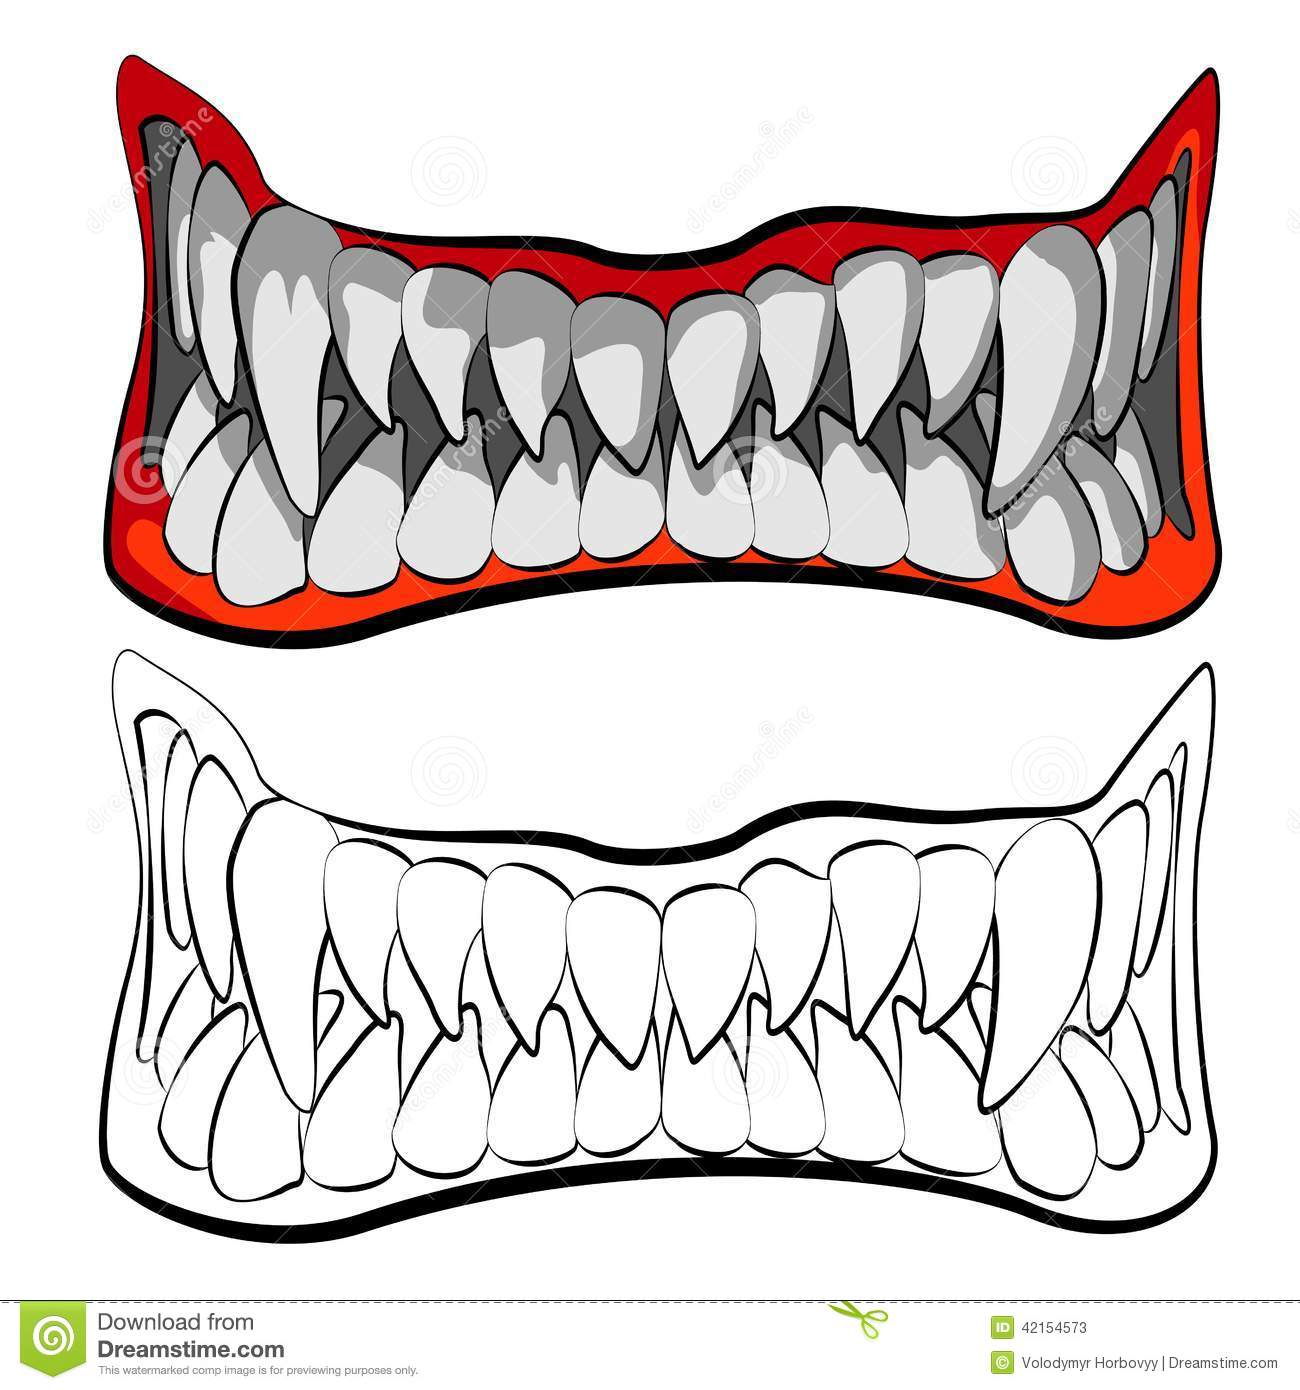 Animal fangs clipart image transparent download Sharp Teeth Clipart | Free download best Sharp Teeth Clipart on ... image transparent download